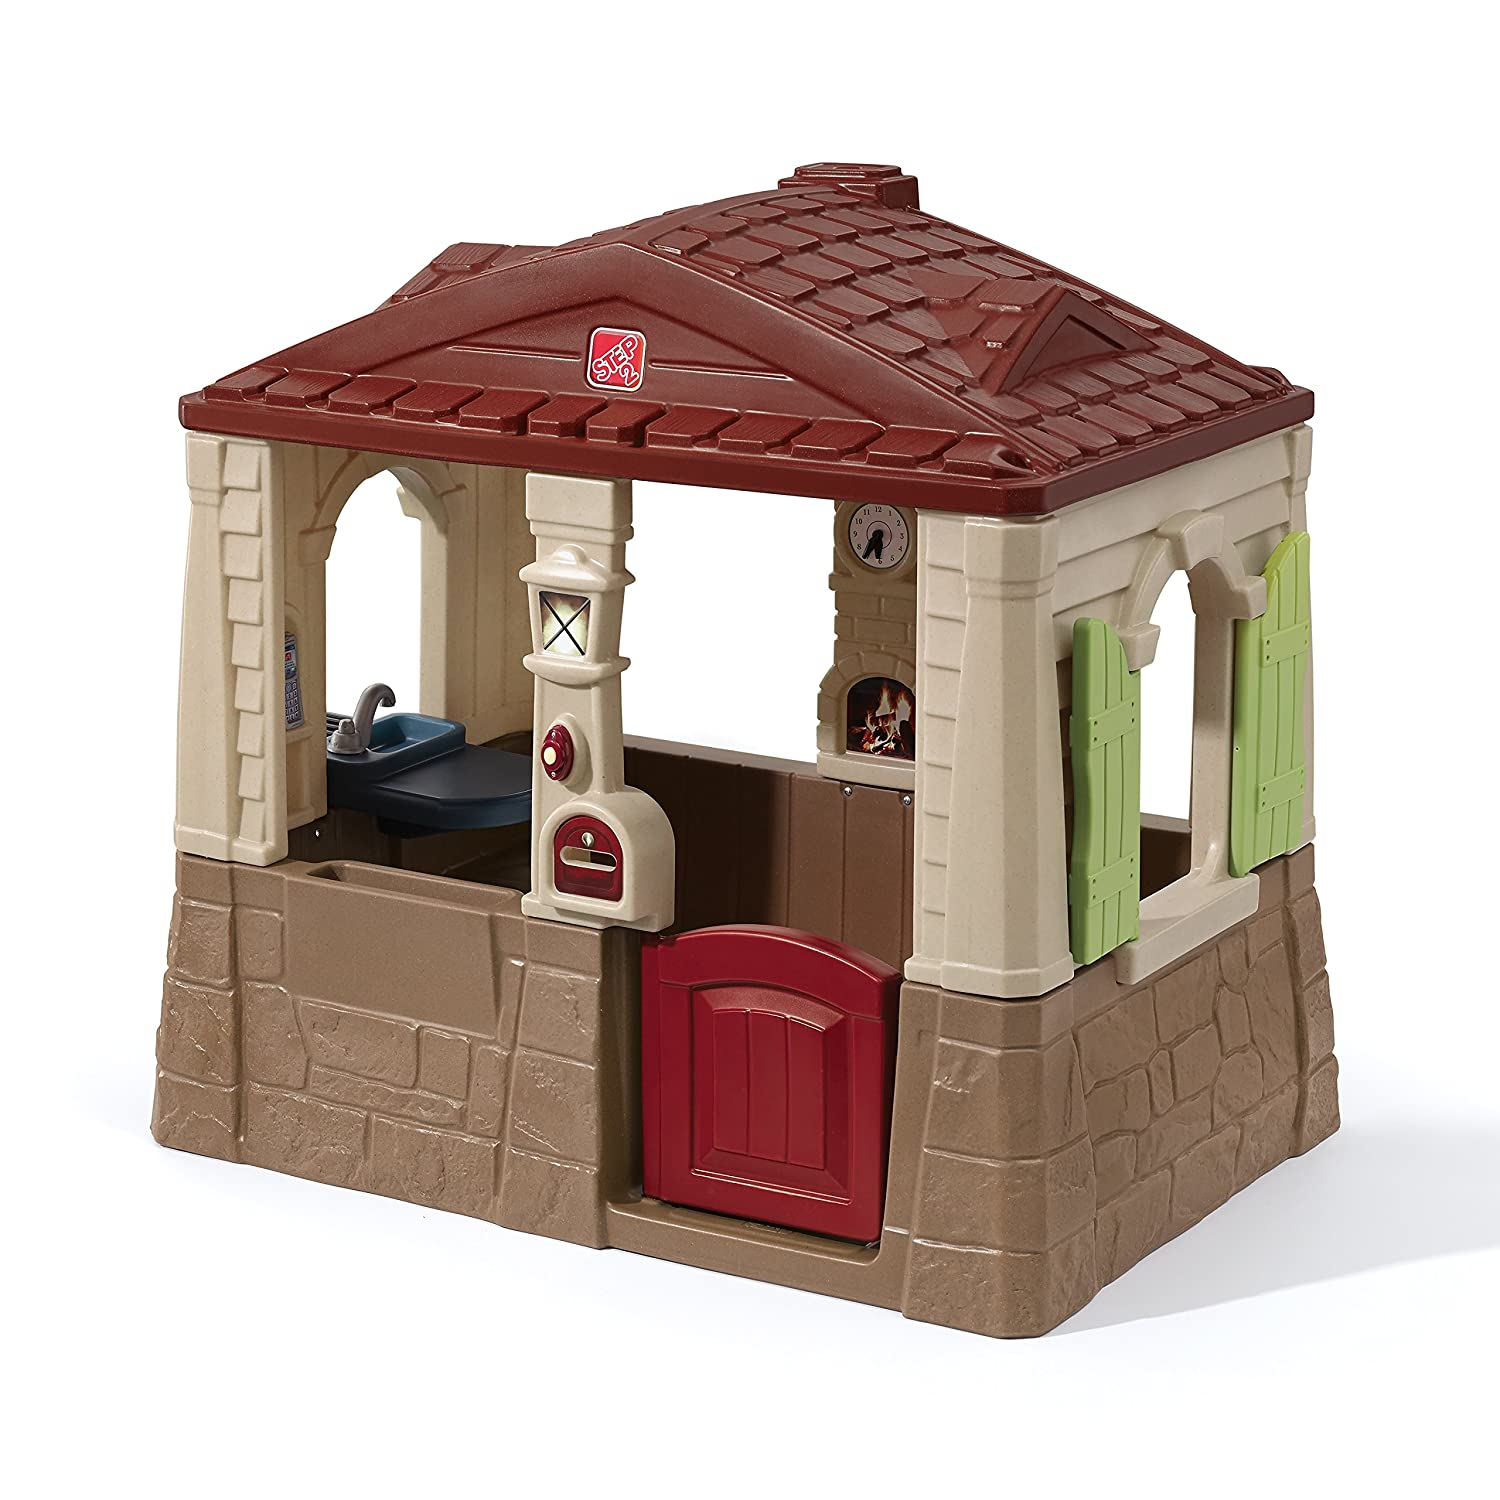 Top 6 Best Kids Outdoor Playhouse Reviews in 2020 4